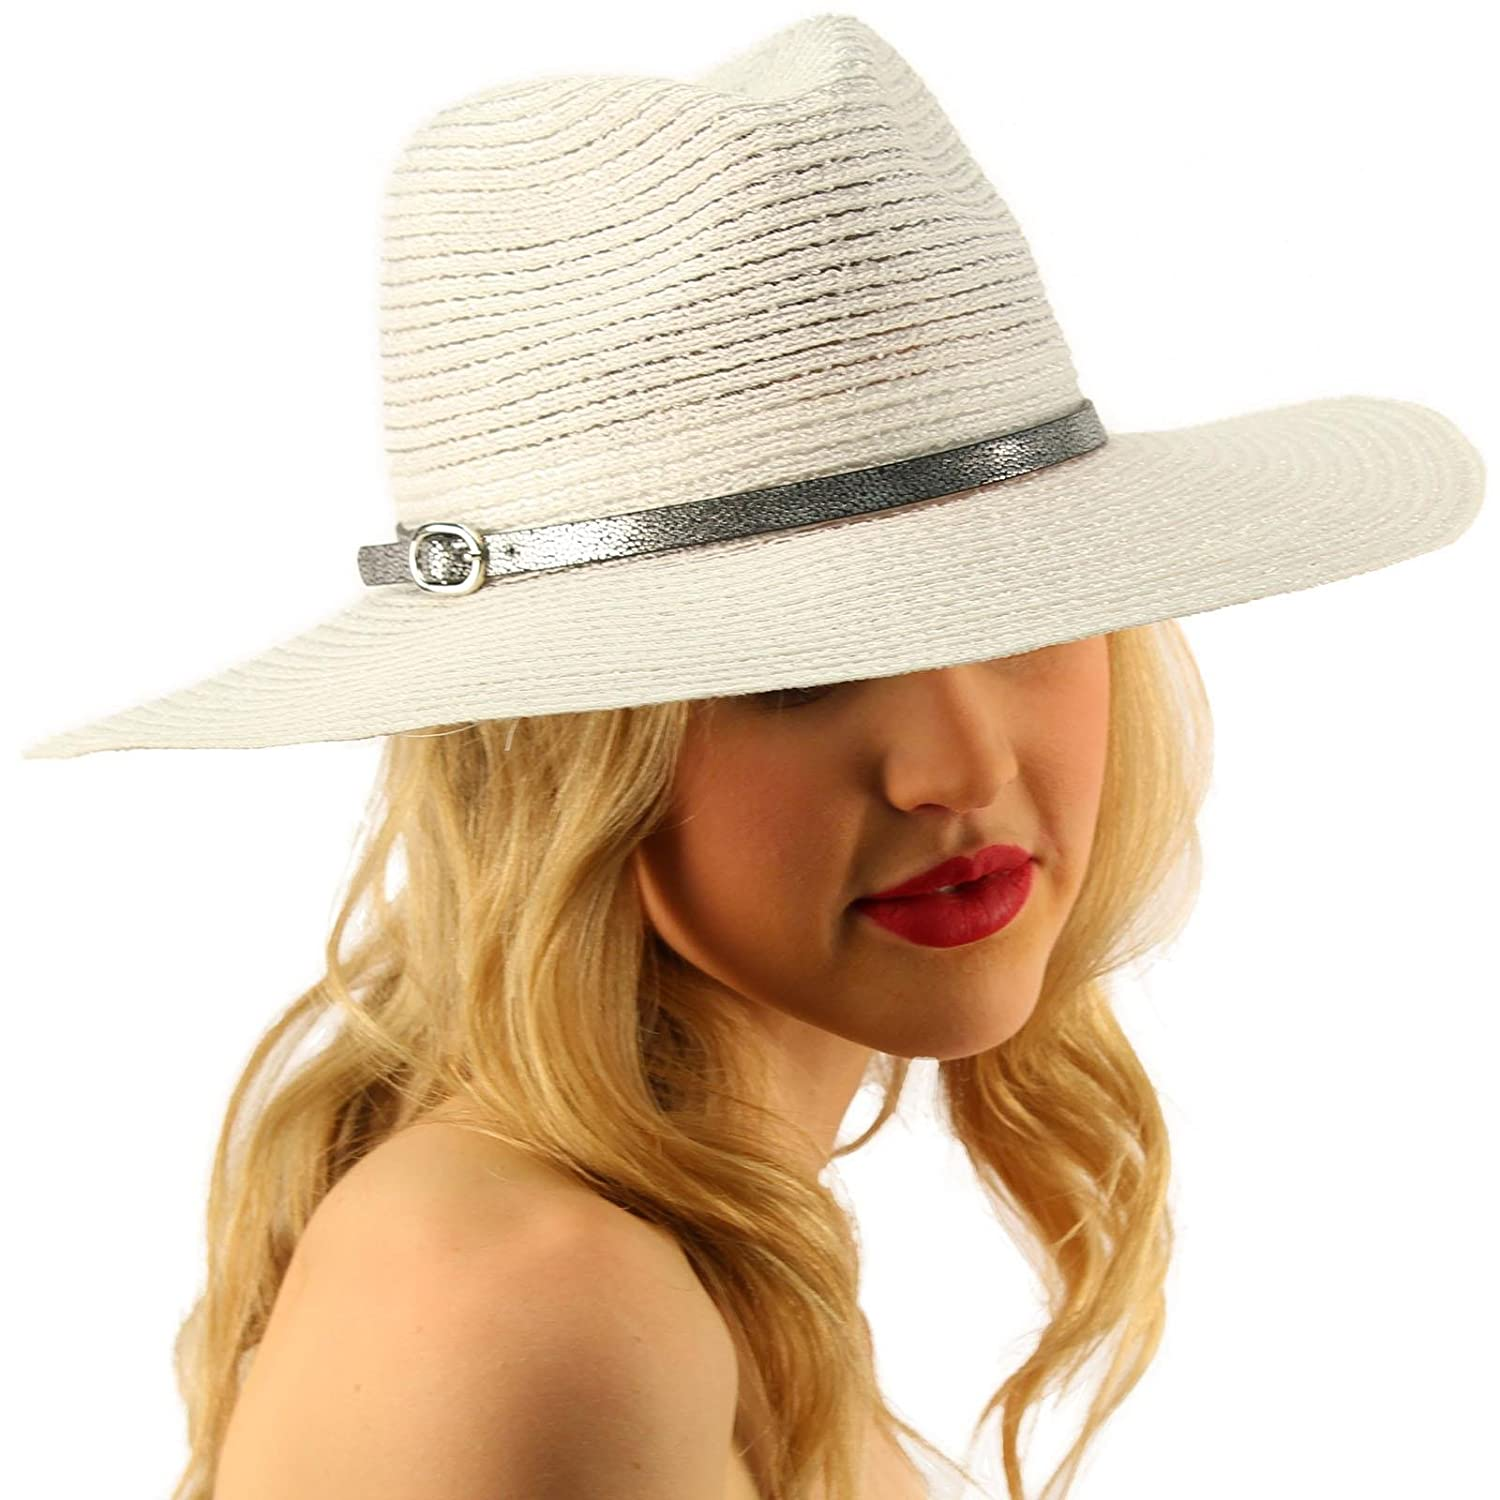 1f6499f66a73 Summer Metallic Light Airy Crushable Fedora Panama Derby Beach Pool Sun Hat  White: Amazon.in: Clothing & Accessories